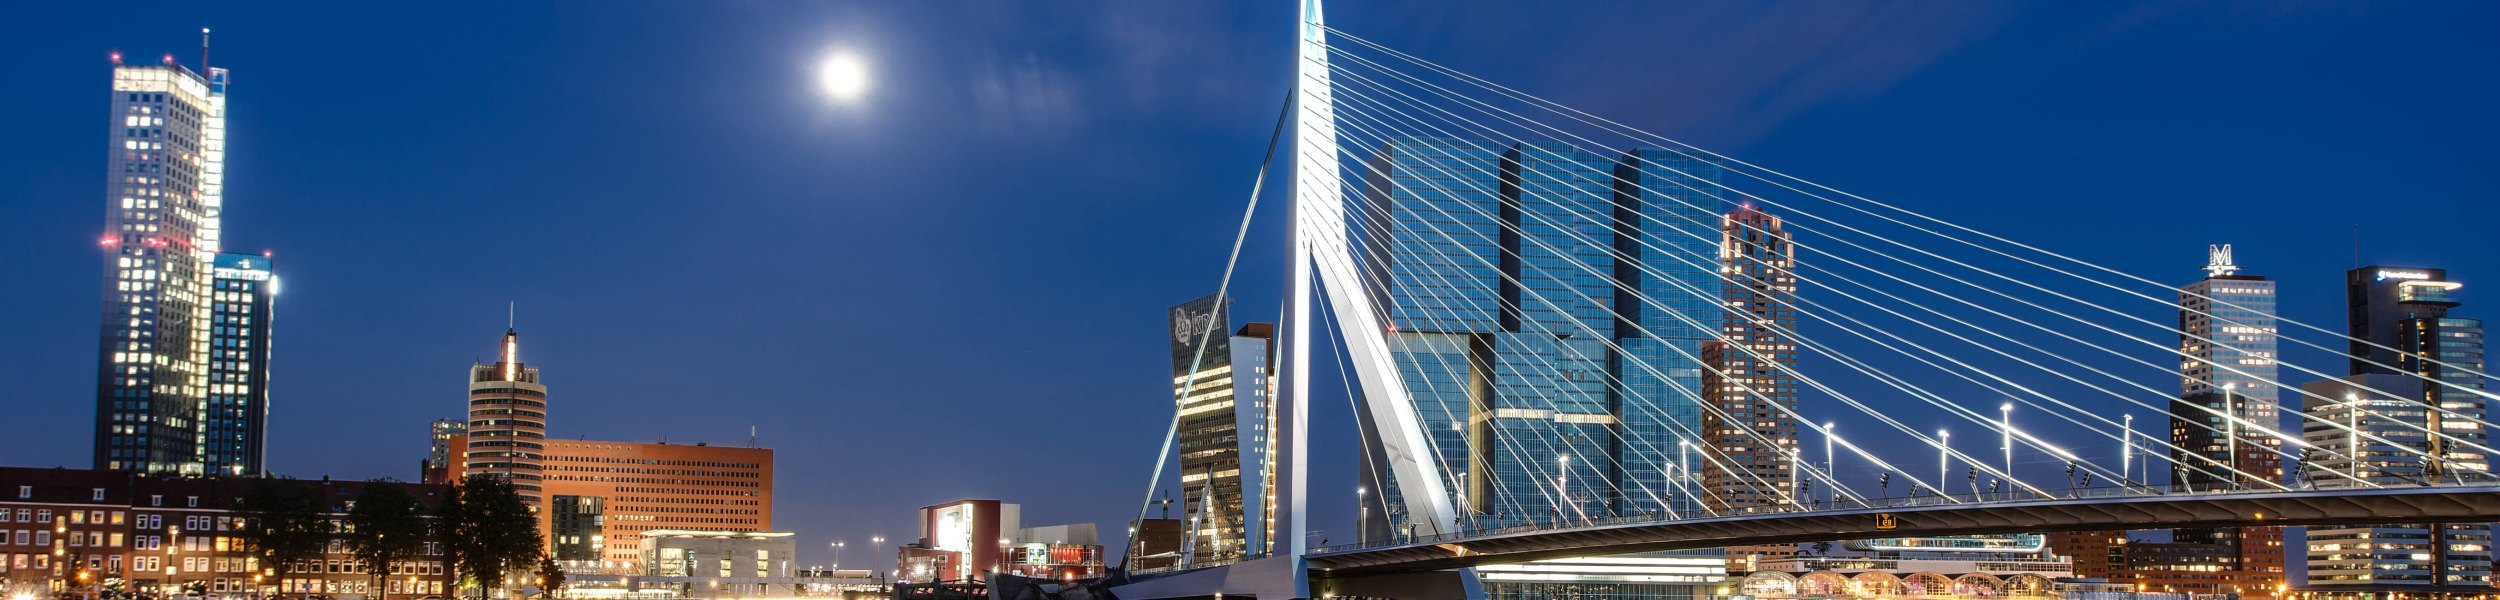 Software Engineer (WPF) Rotterdam, the Netherlands